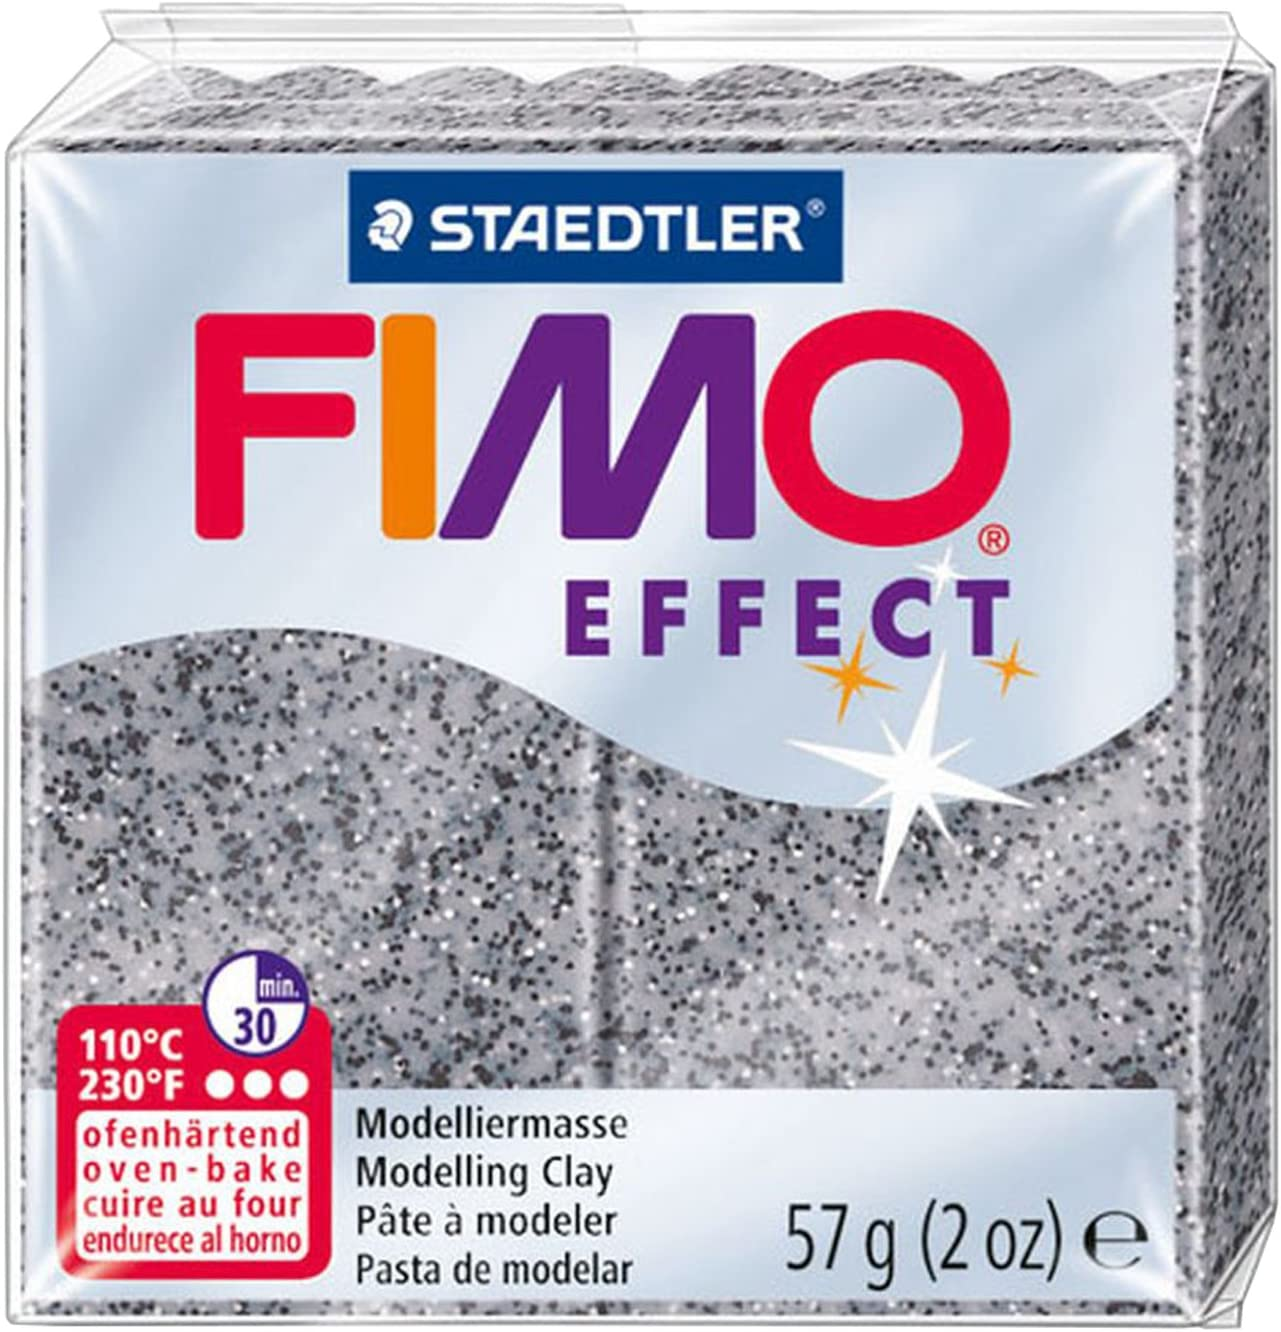 Staedtler FIMO Effects Polymer Clay - -Oven Bake Clay for Jewelry, Sculpting, Granite 8020-803